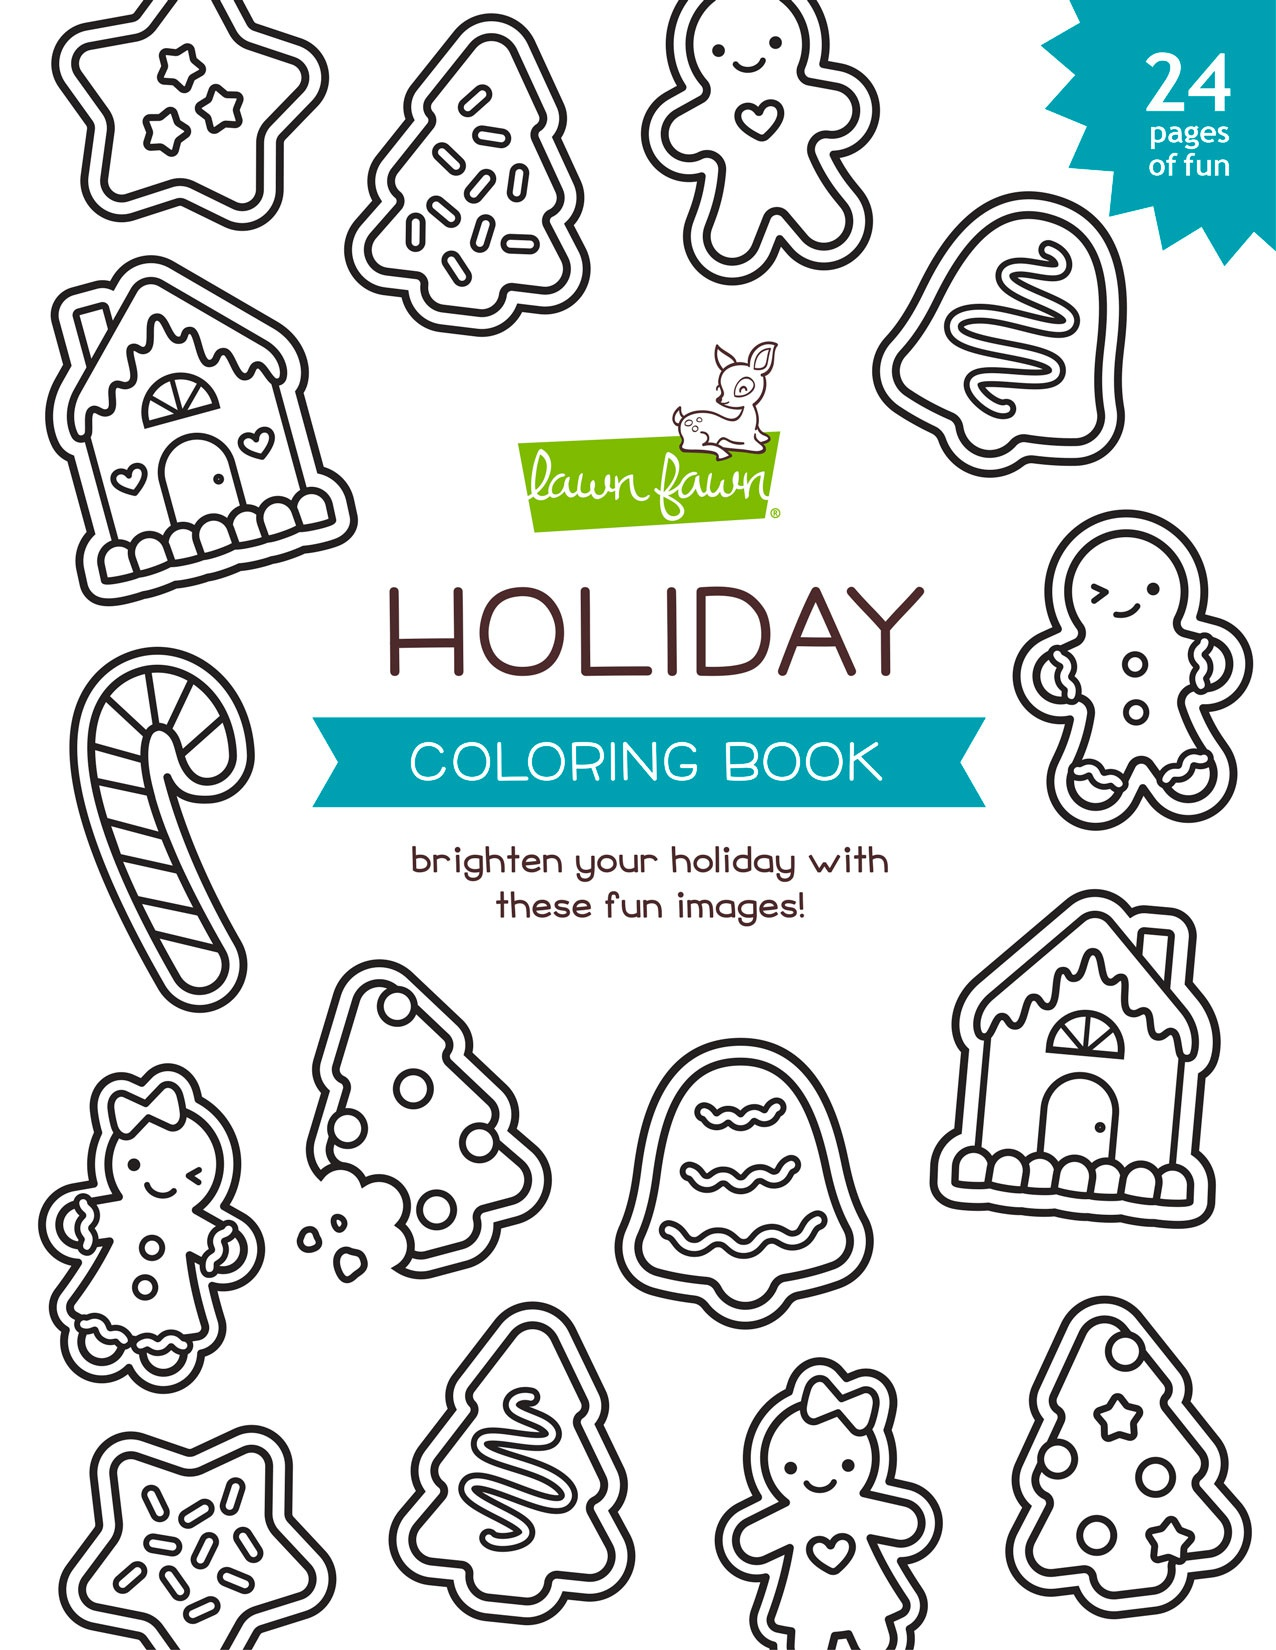 Lawn Fawn Coloring Book-Holiday